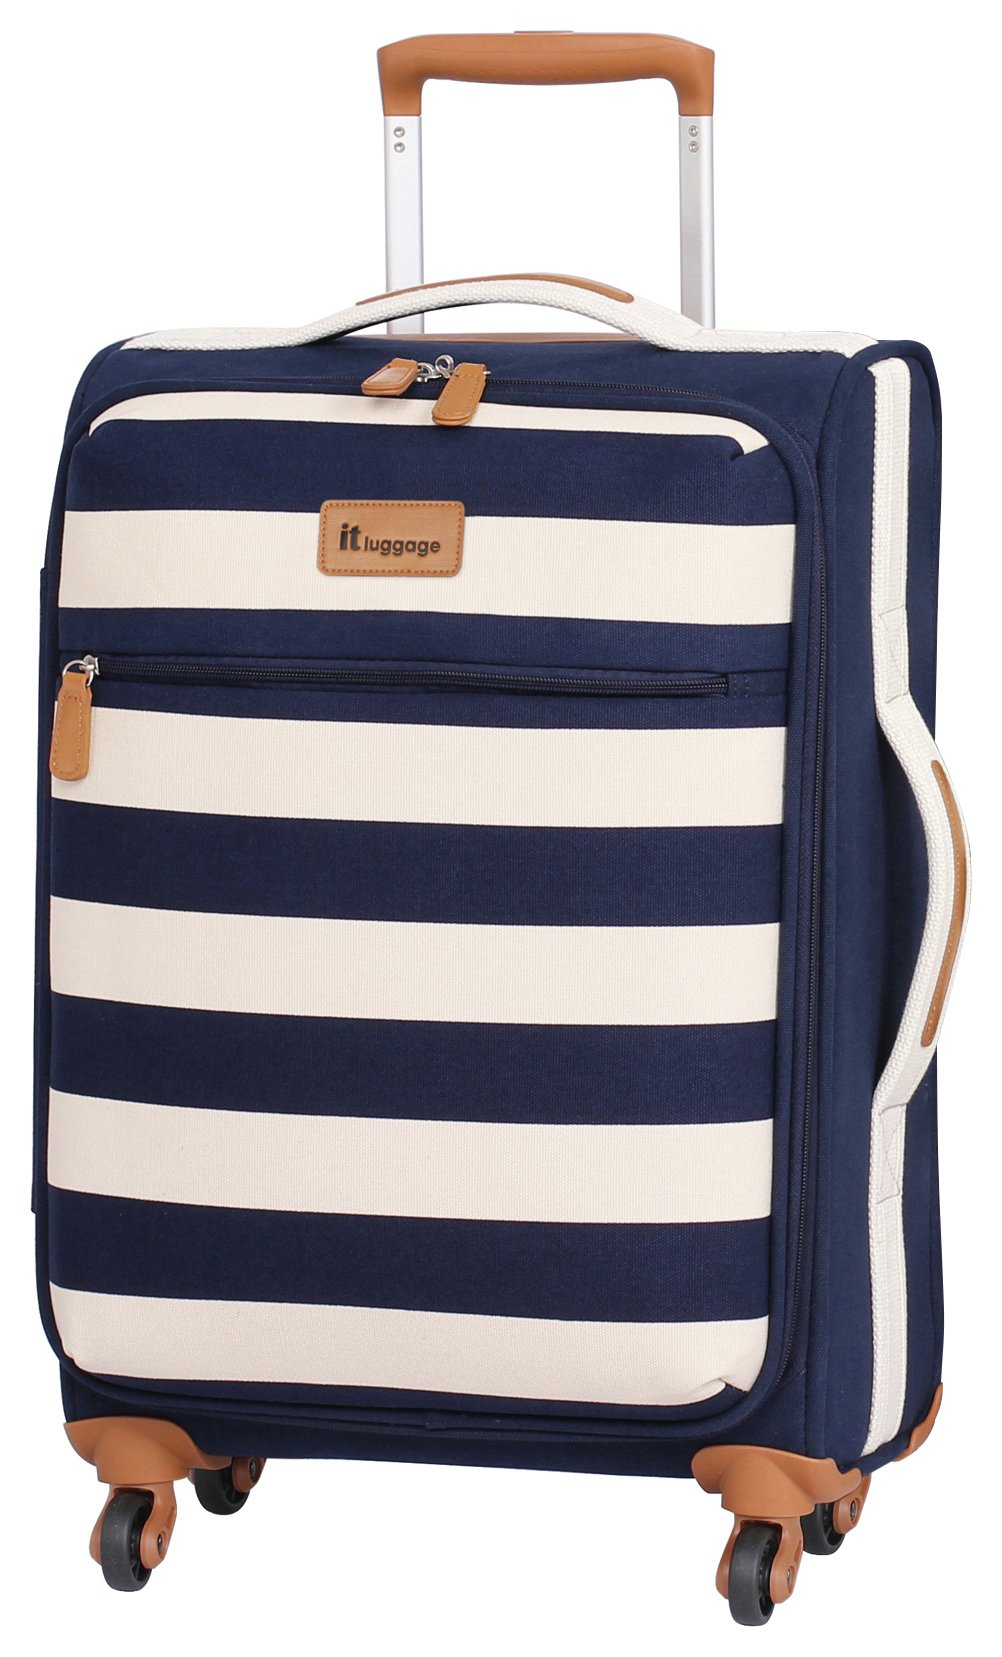 IT Luggage Lightweight Small 4 Wheel Suitcase - Nautical lowest price